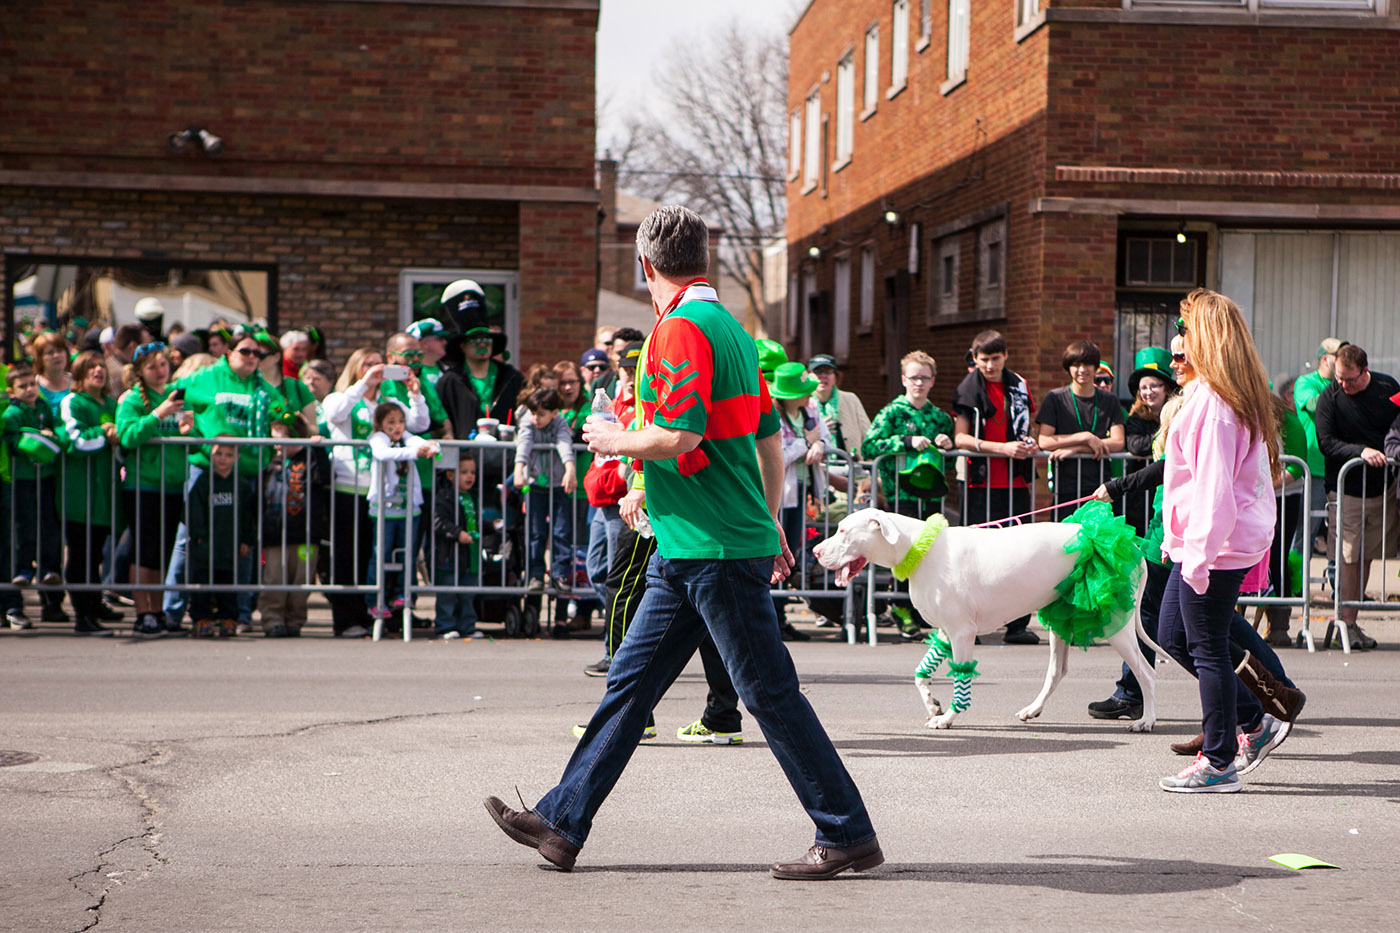 Chicago South Side Irish Parade 2015 - St. Patrick's Day